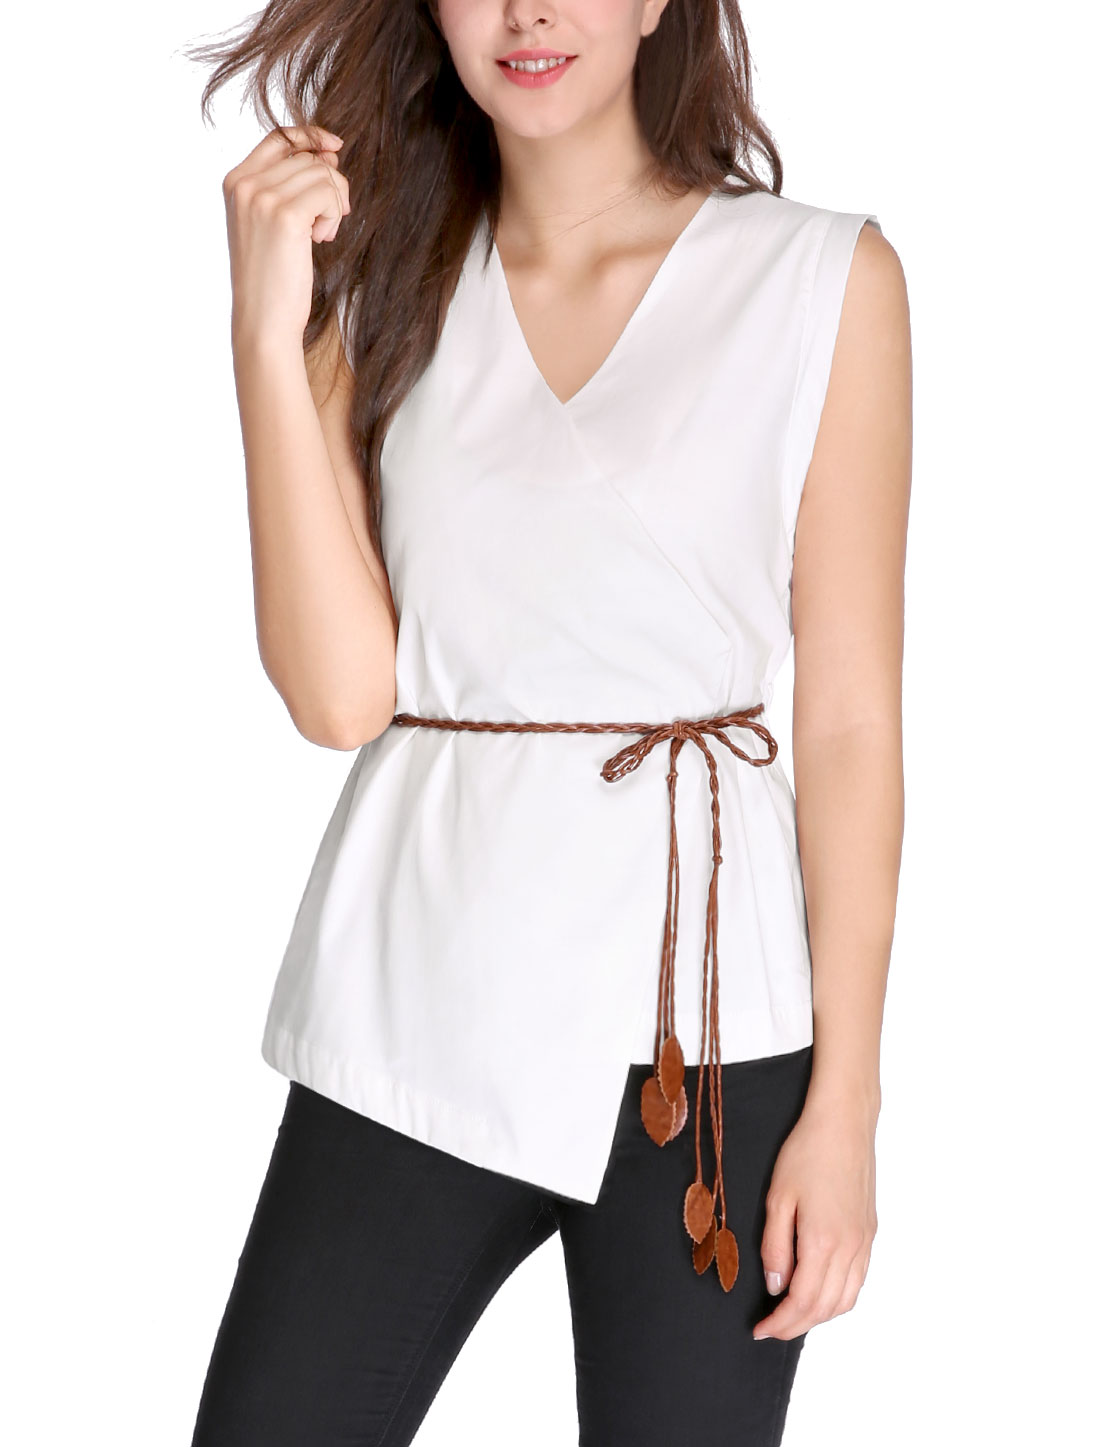 Women V Neck Asymmetric Wrap Front Belted Sleeveless Top White XS